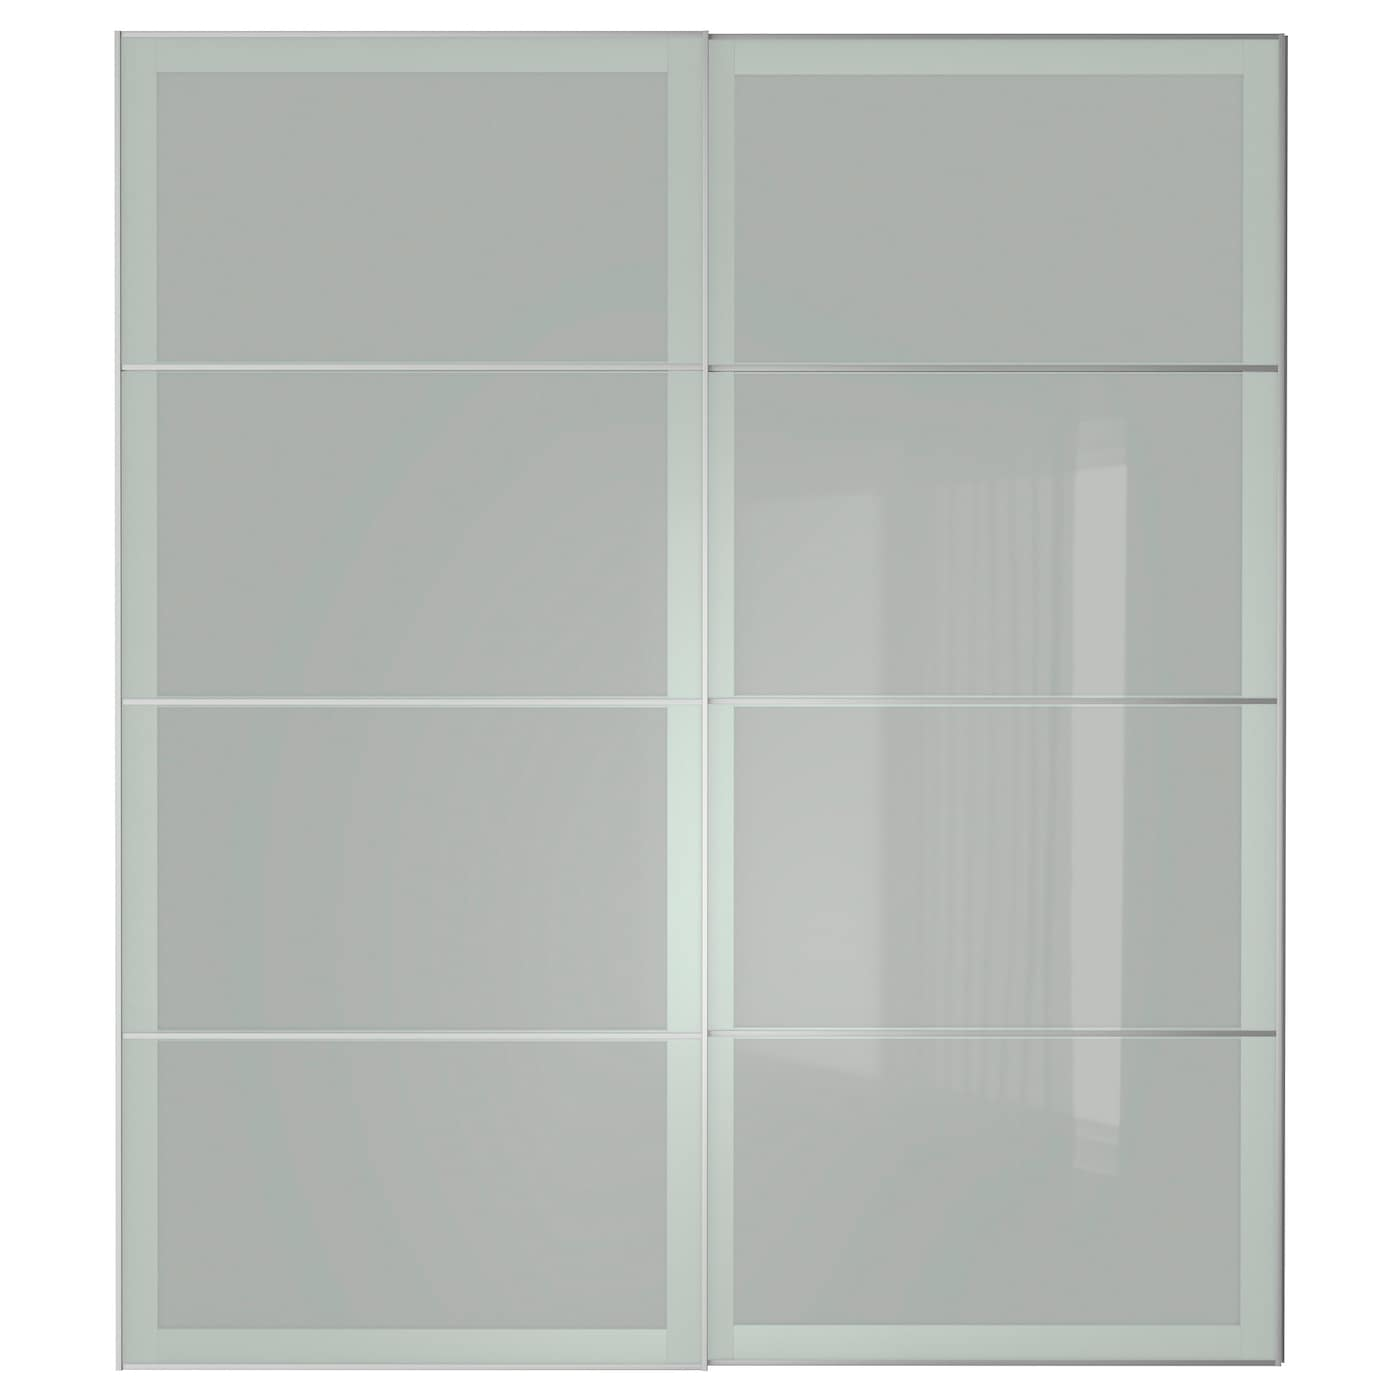 Schwebetürenschrank ikea  SEKKEN Pair of sliding doors Frosted glass 200x236 cm - IKEA